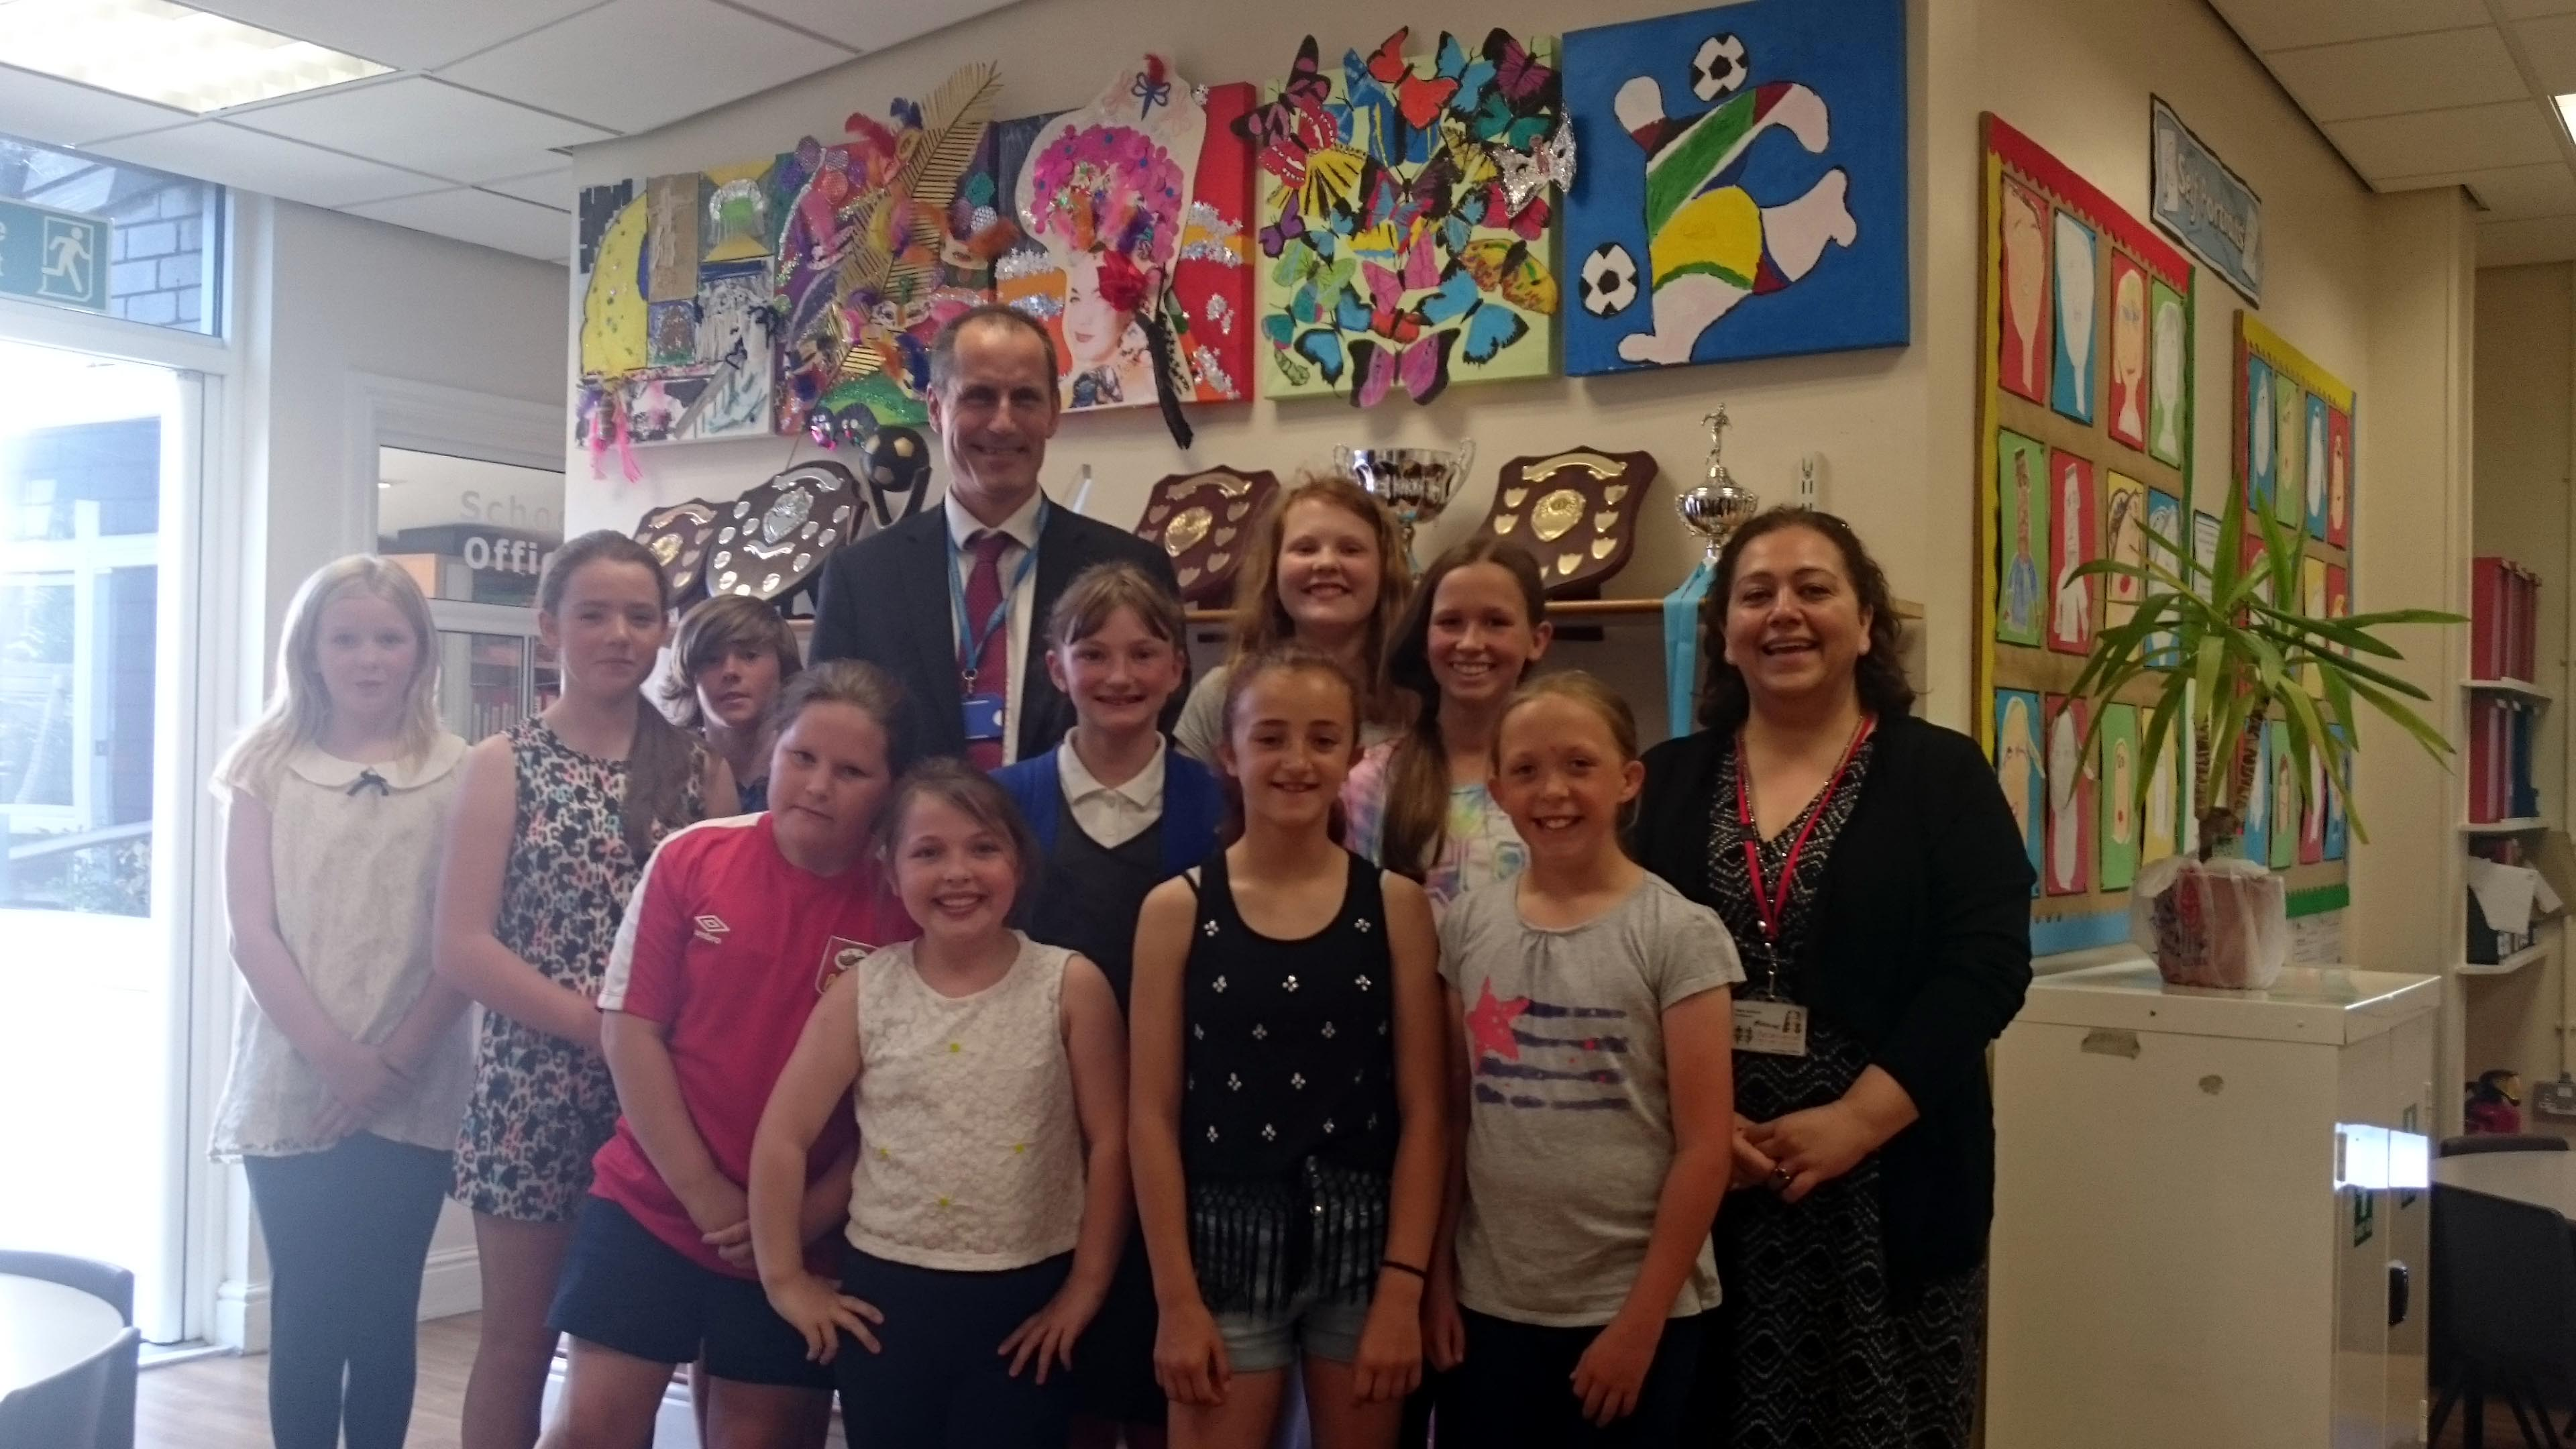 Sefton Central Labour MP Bill Esterson with staff and pupils during his visit to Crosby's Valewood Primary.